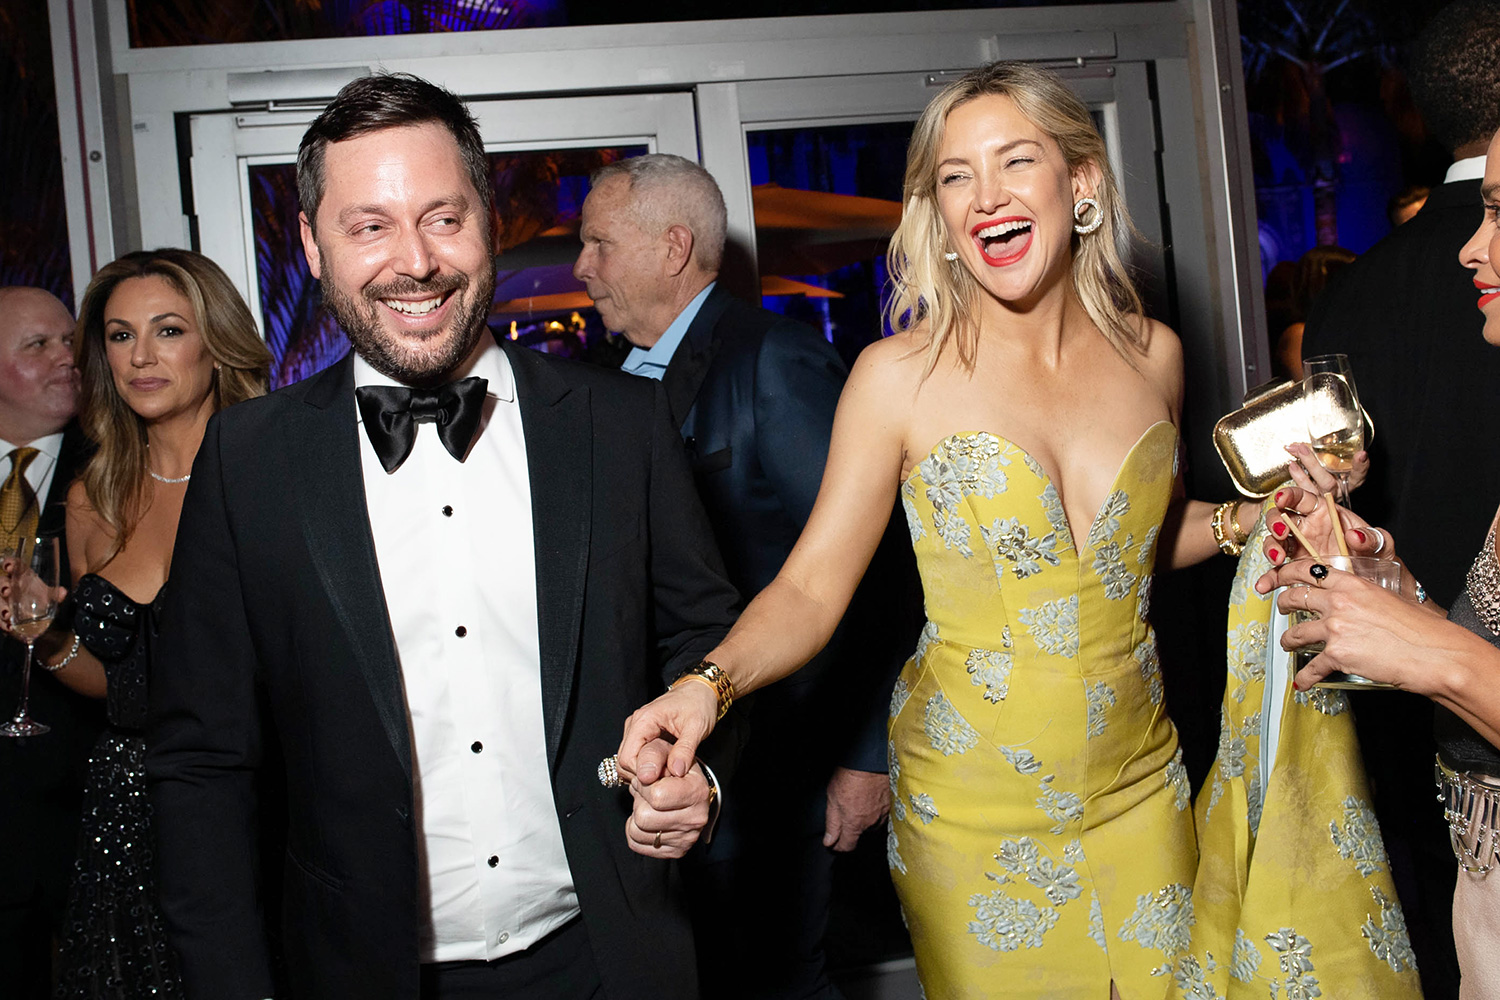 Kate Hudson attends the 2020 Vanity Fair Oscar Party hosted by Radhika Jones at Wallis Annenberg Center for the Performing Arts on February 09, 2020 in Beverly Hills, California